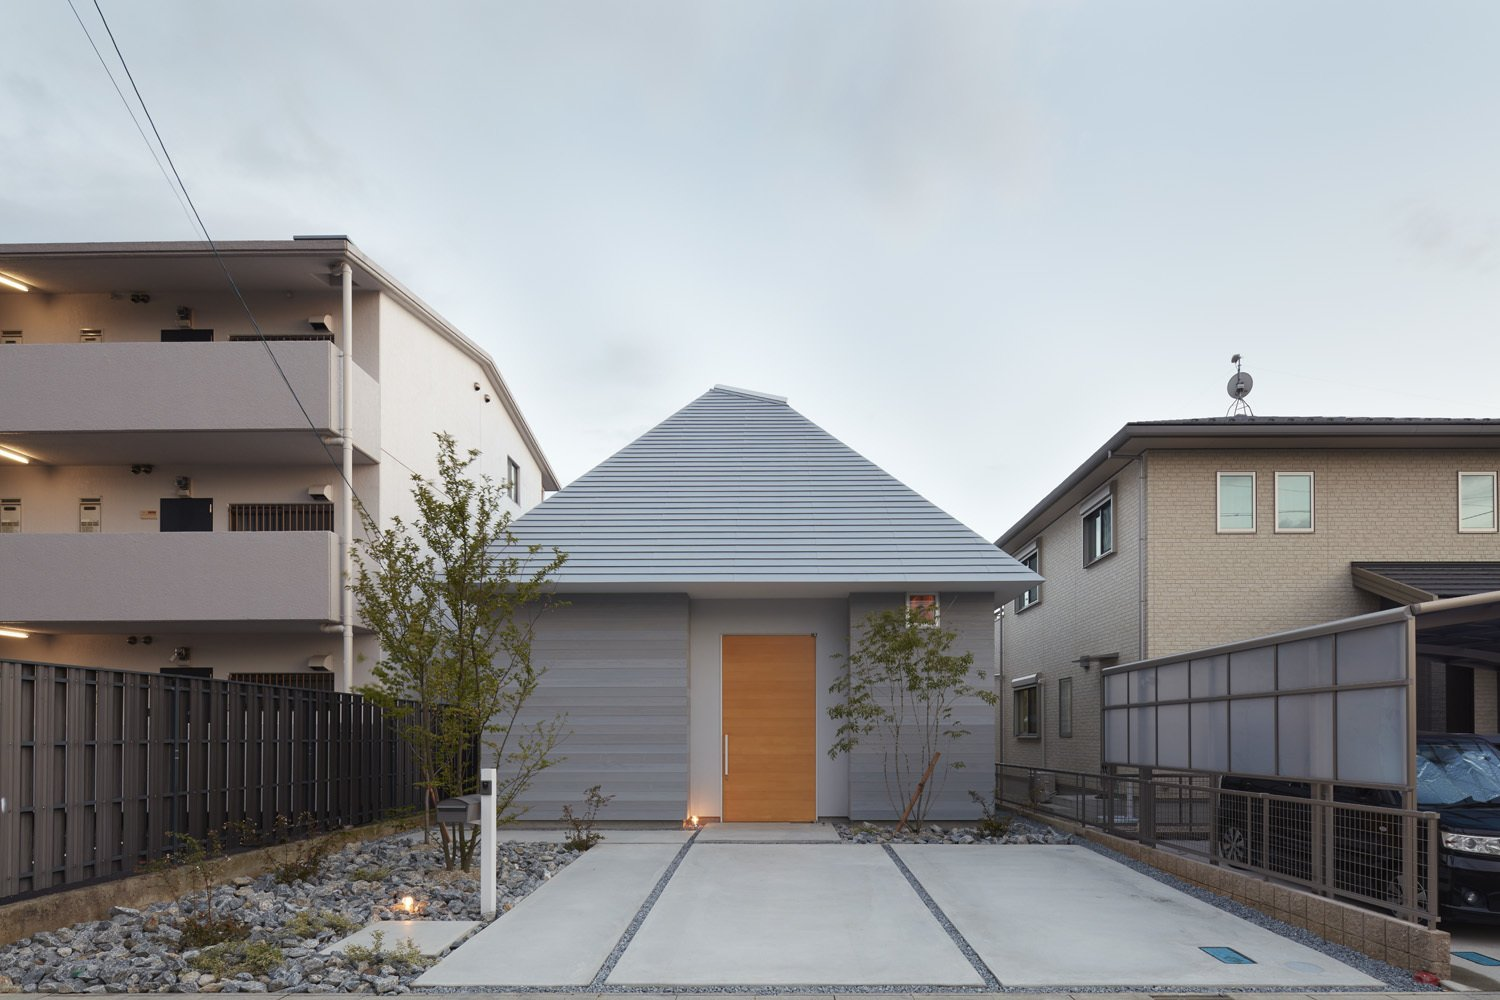 Photo 7 of 8 in House in Iwakura by Airhouse